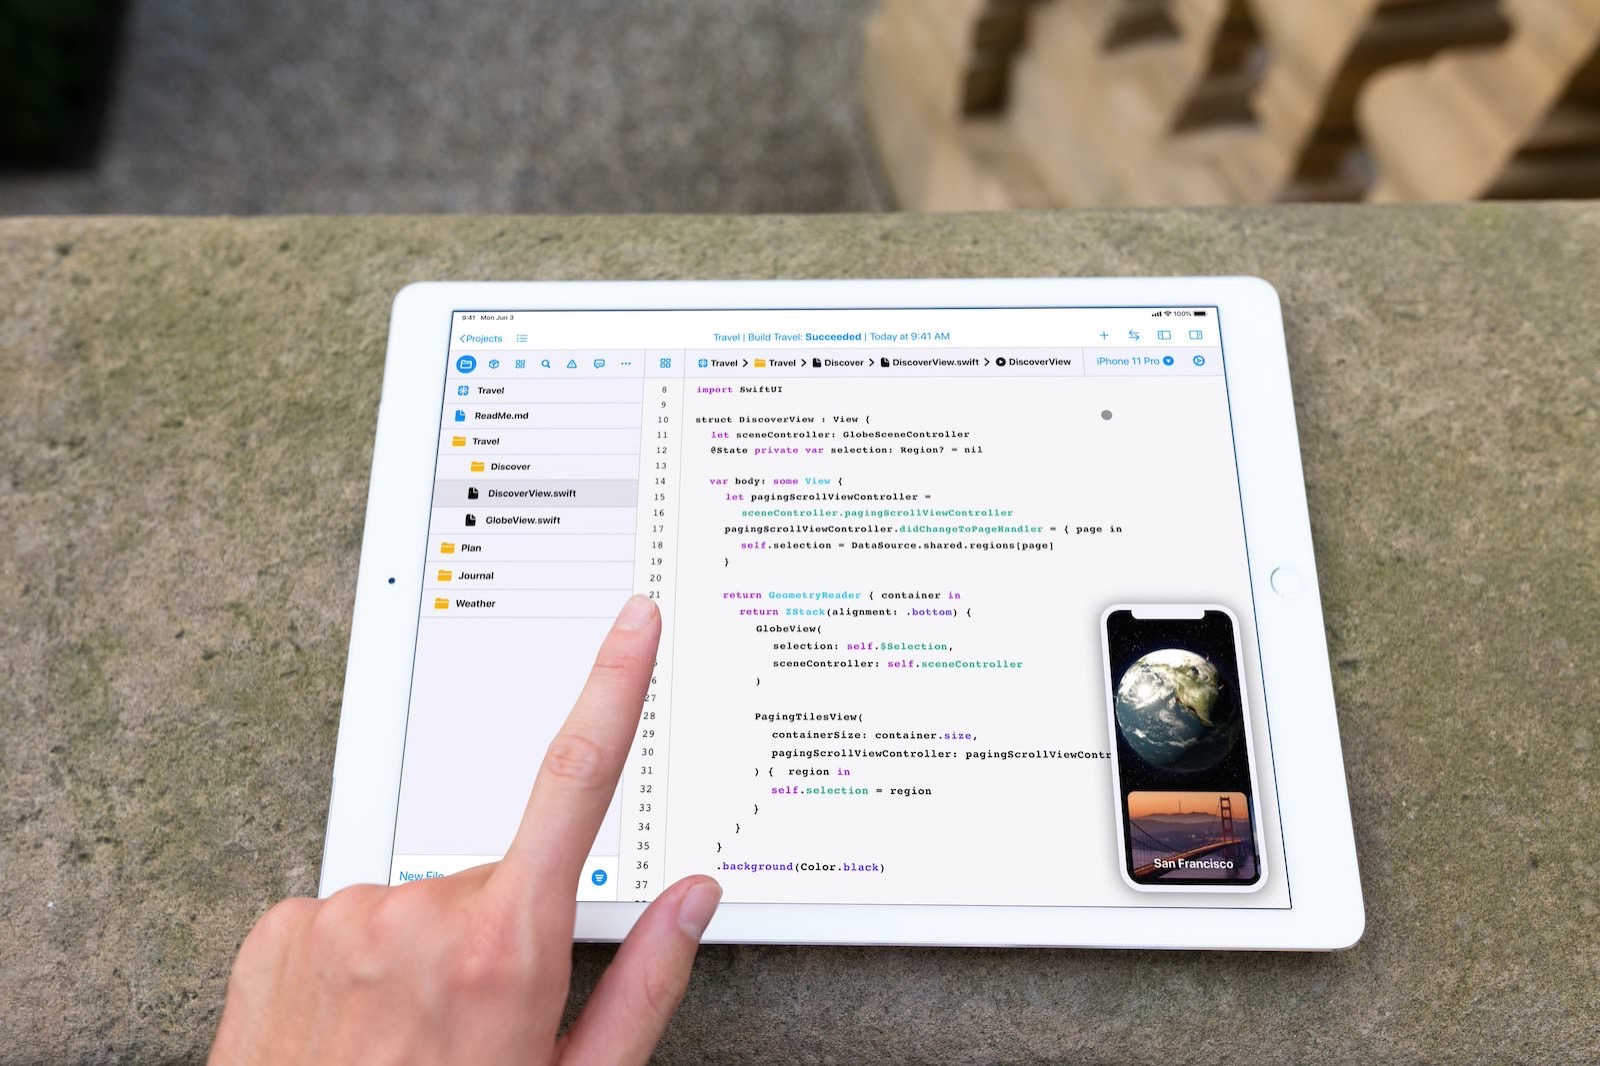 Concept image of xcode on ipad